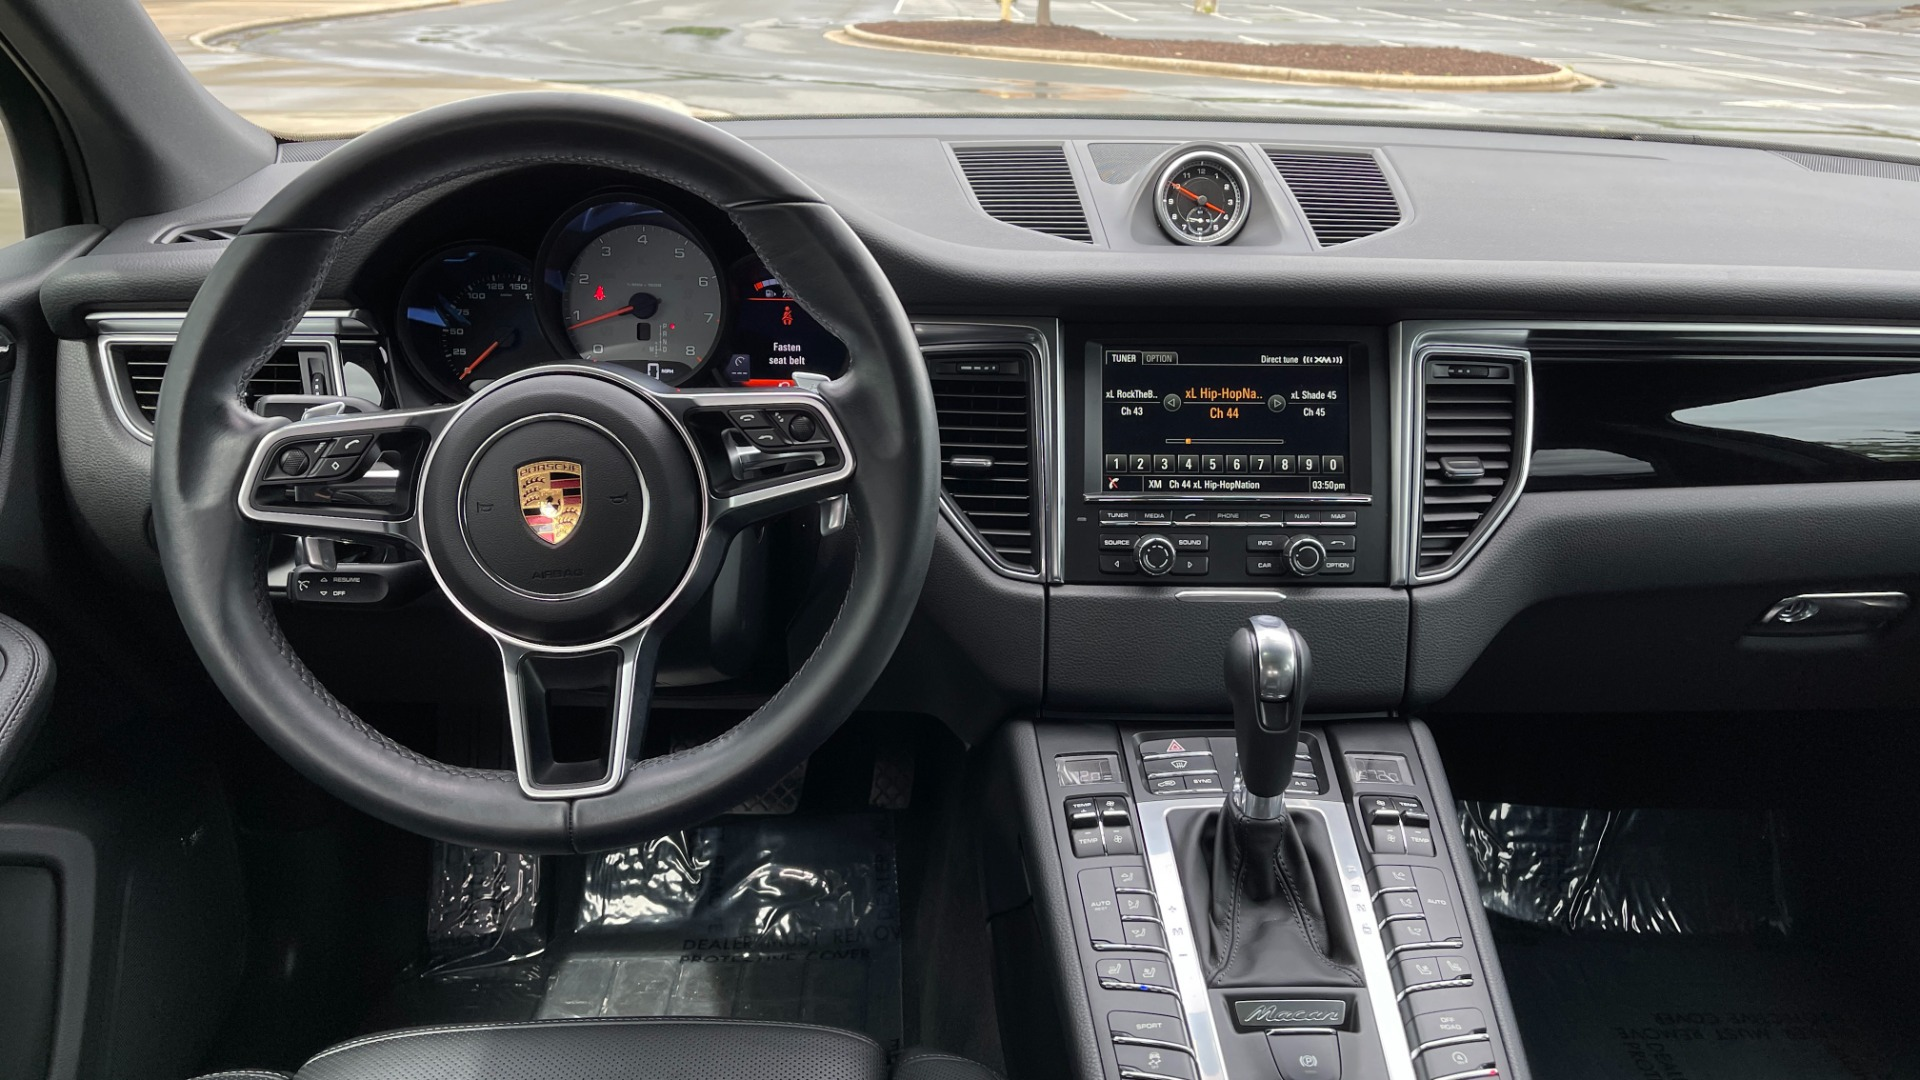 Used 2016 Porsche MACAN S PREMIUM PLUS / AWD / NAV / BOSE / SUNROOF / LCA / PARK ASST / INFOTAINMEN for sale $45,256 at Formula Imports in Charlotte NC 28227 33